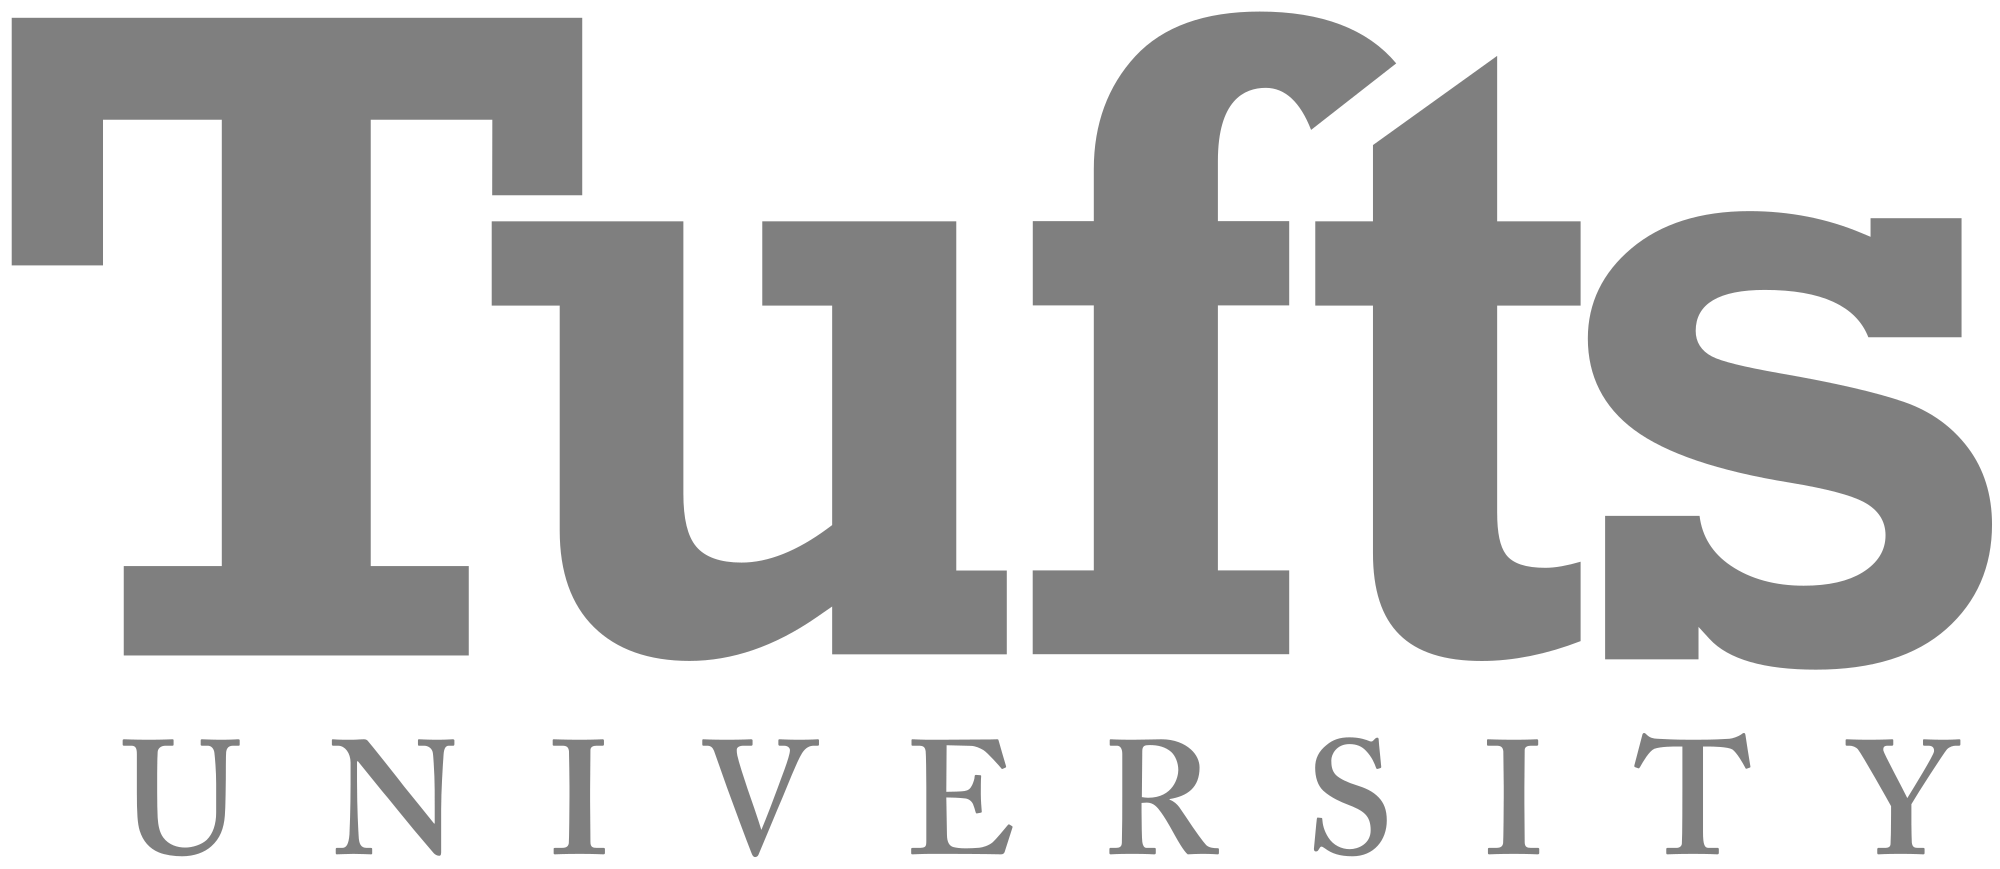 Tufts_GS-1